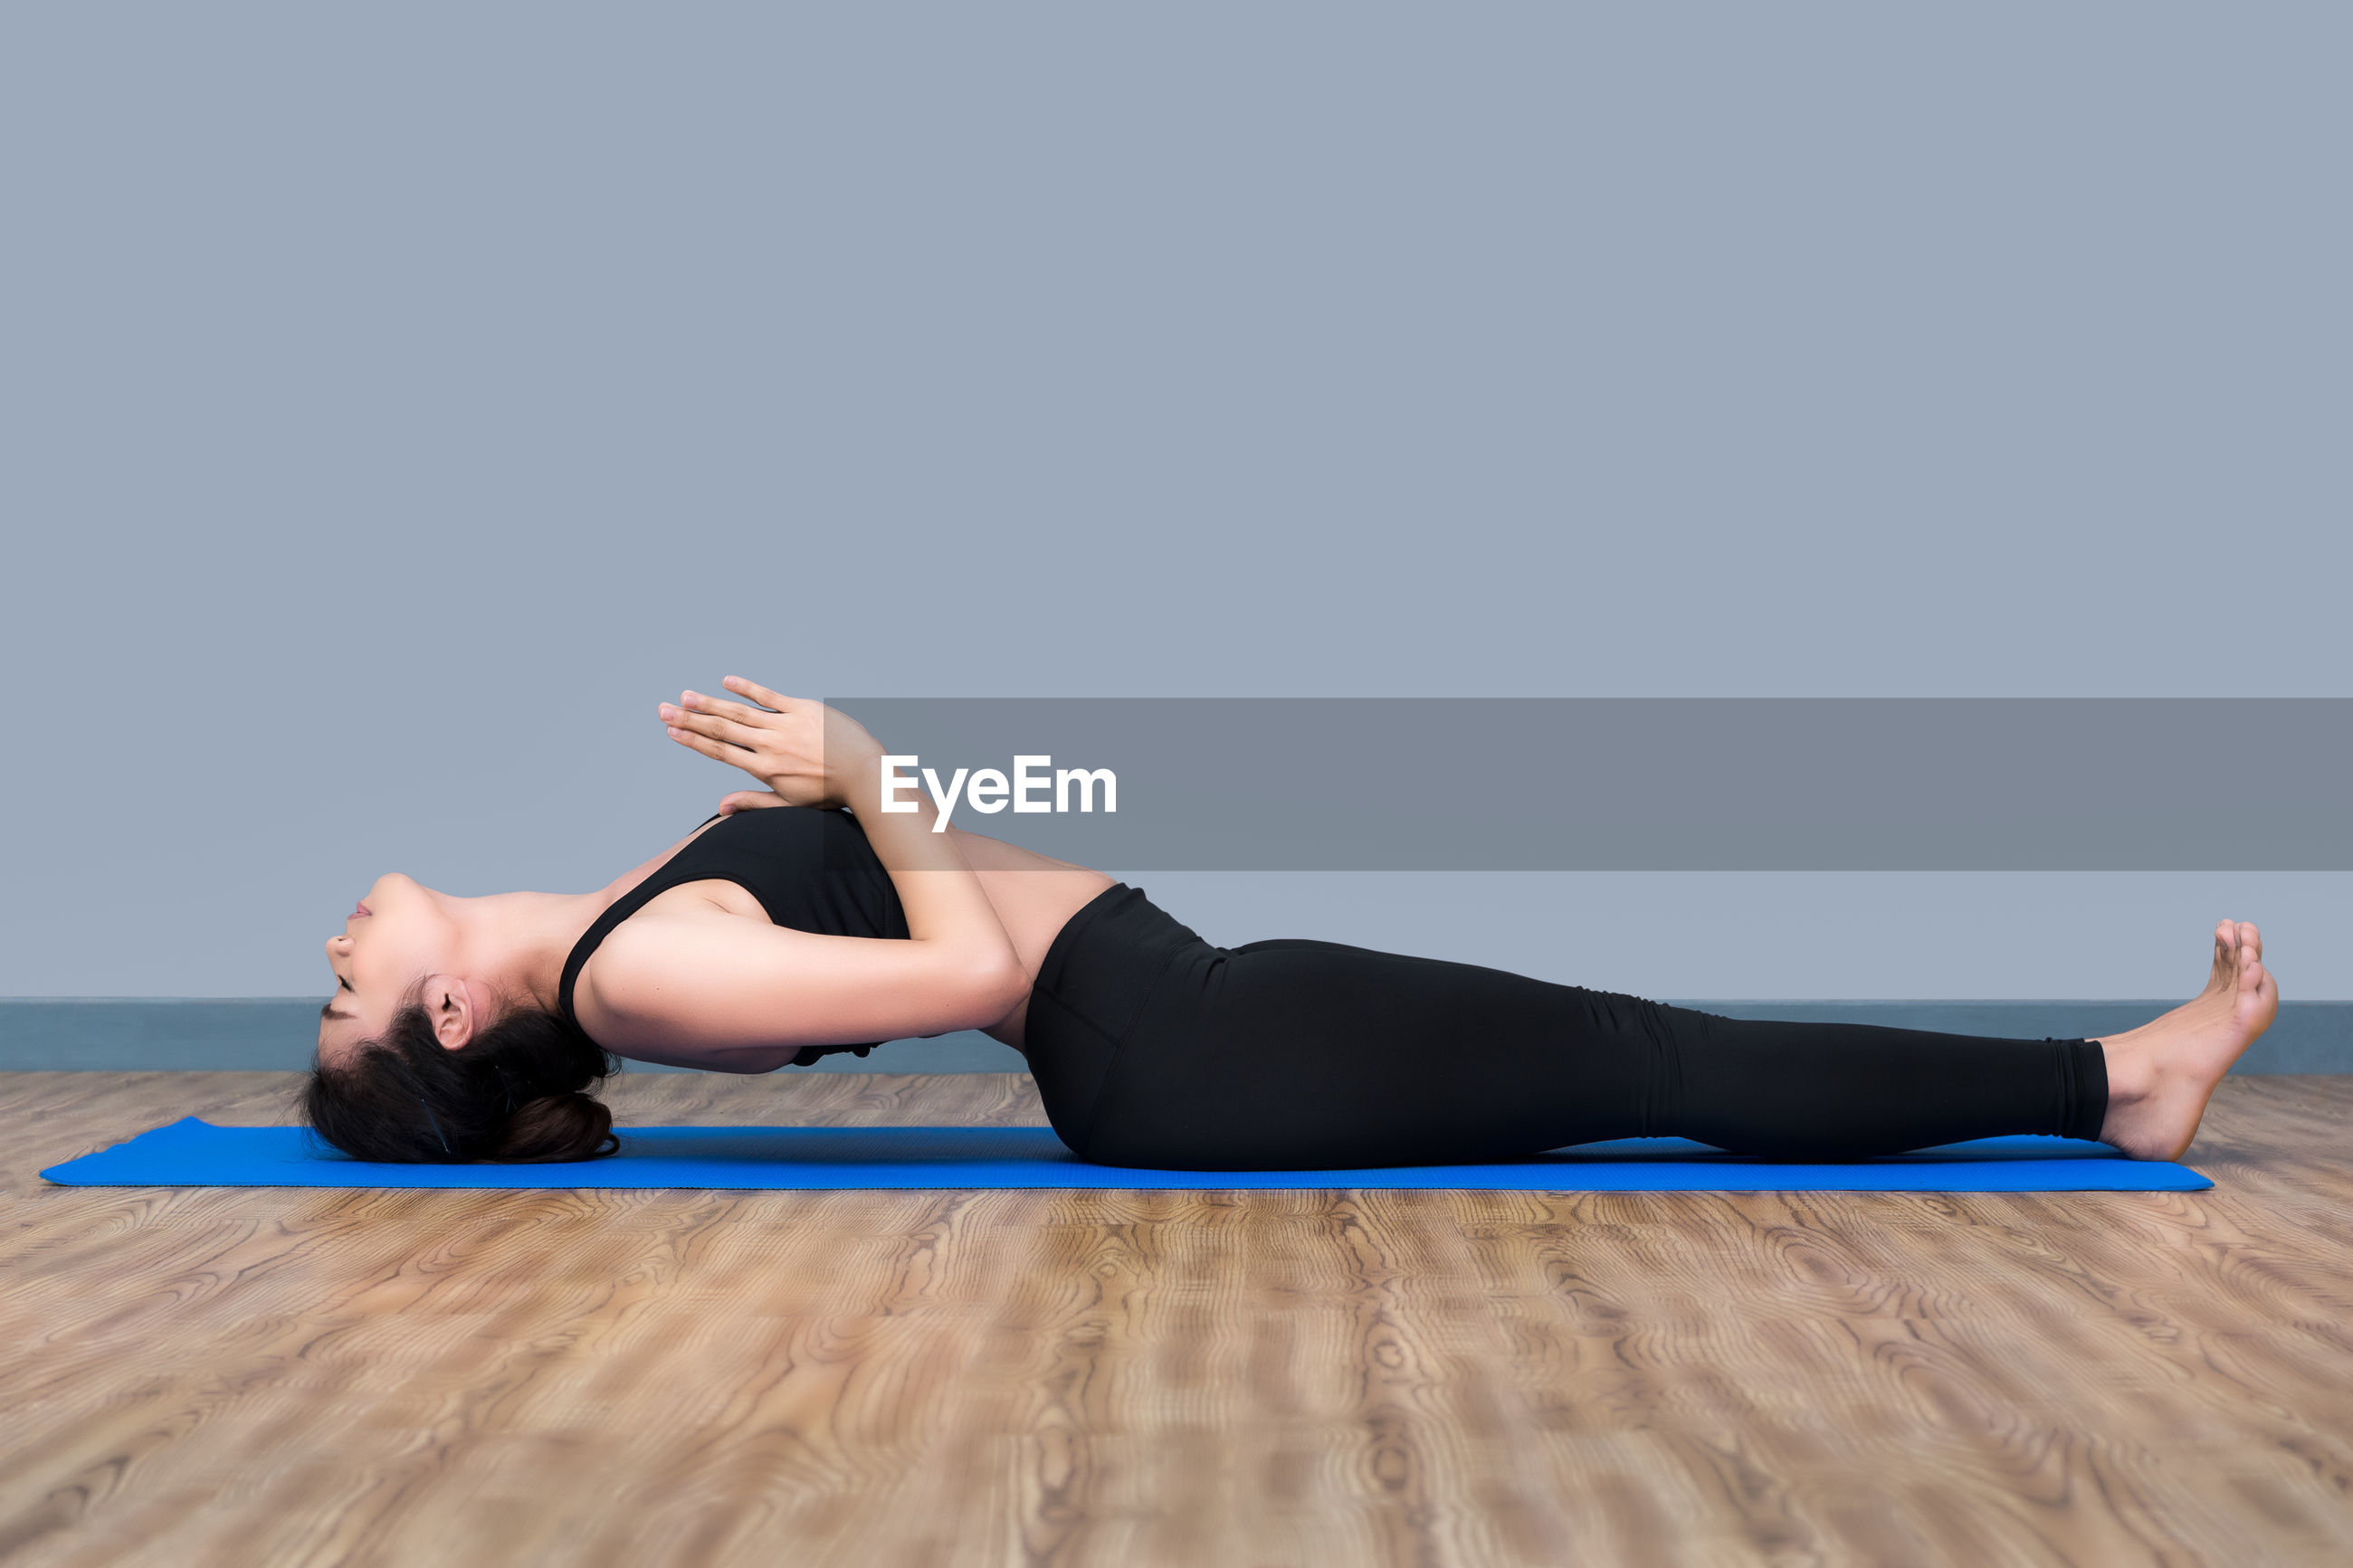 Full length of young woman doing yoga on exercise mat at gym